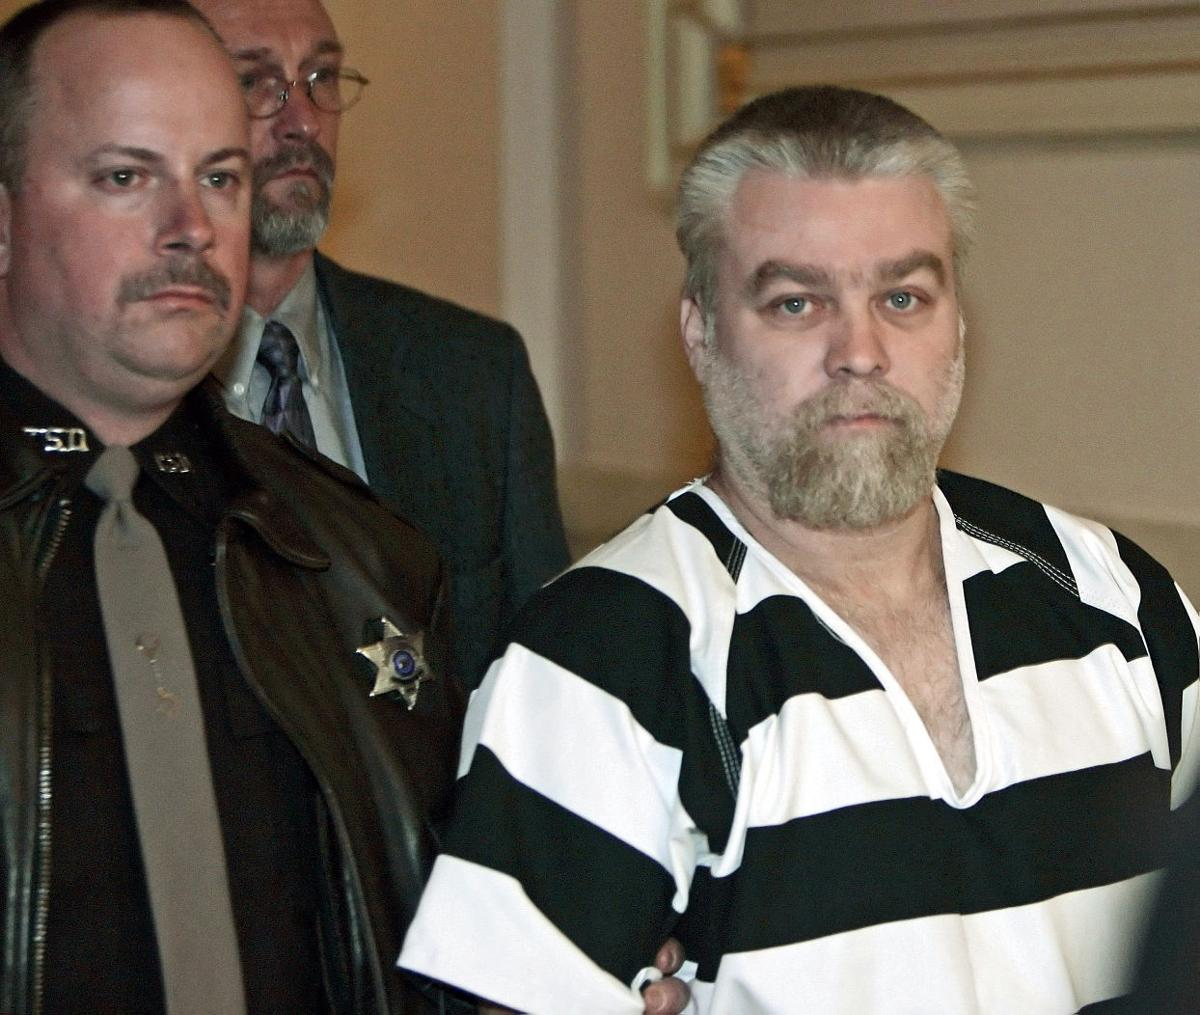 Steven Avery charged